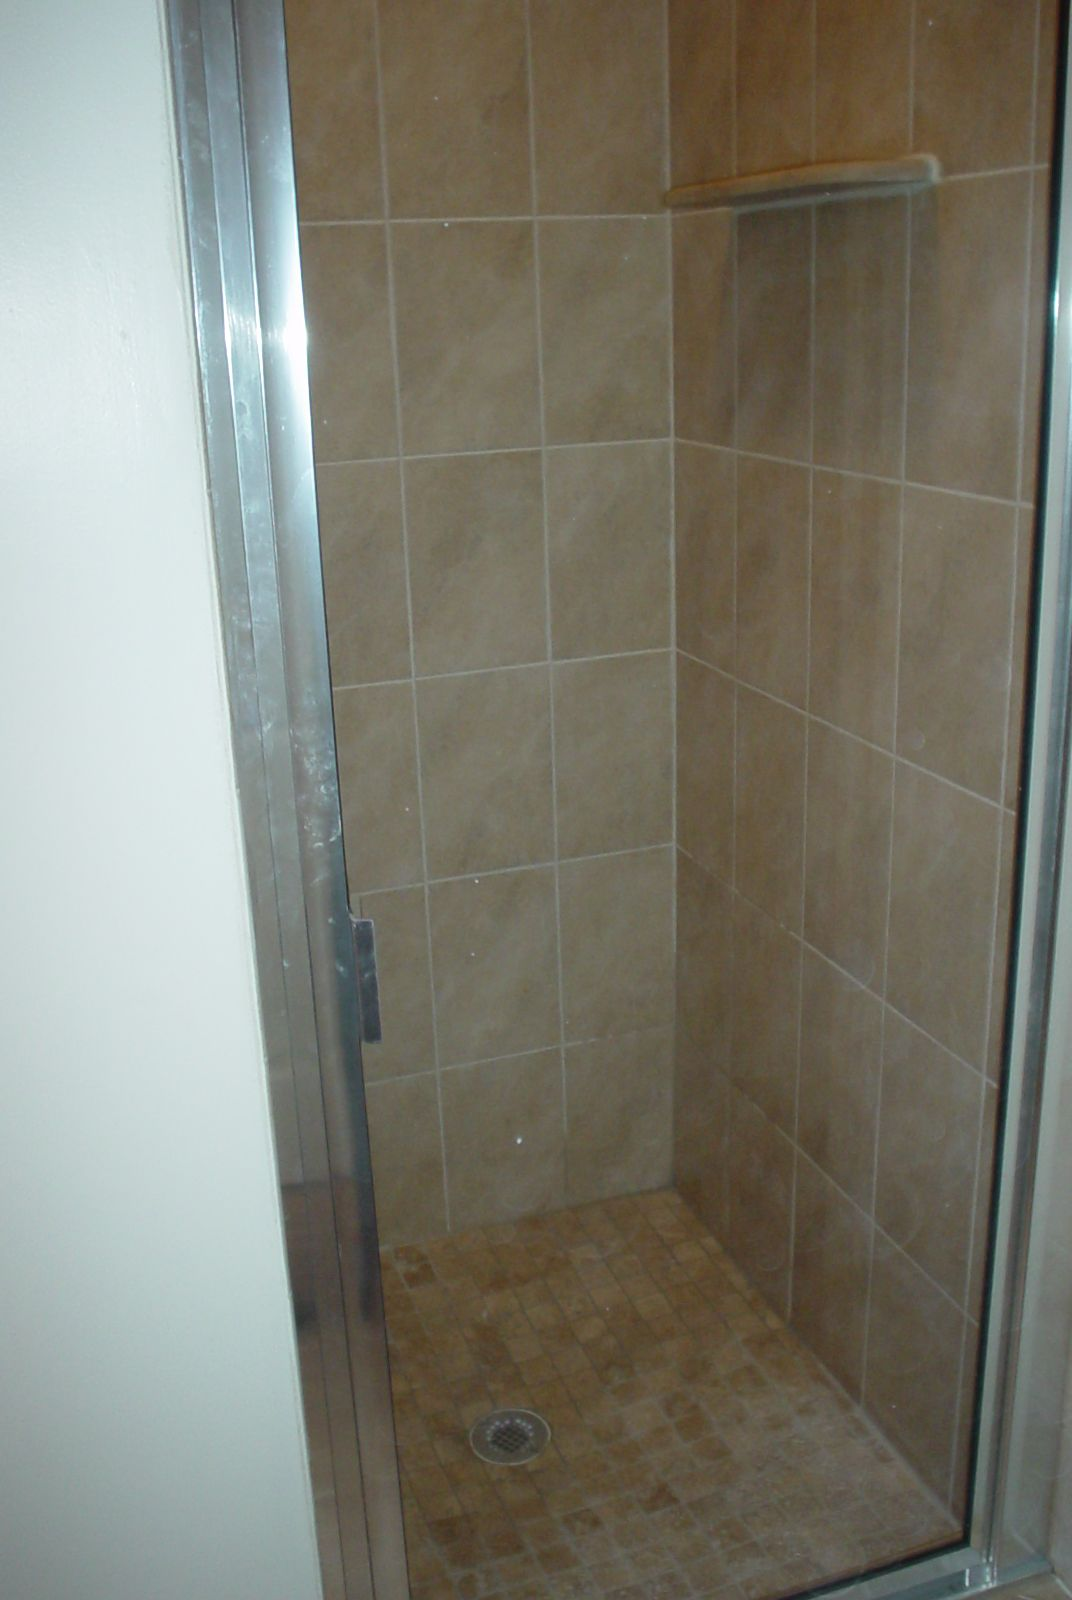 Backwall of the shower